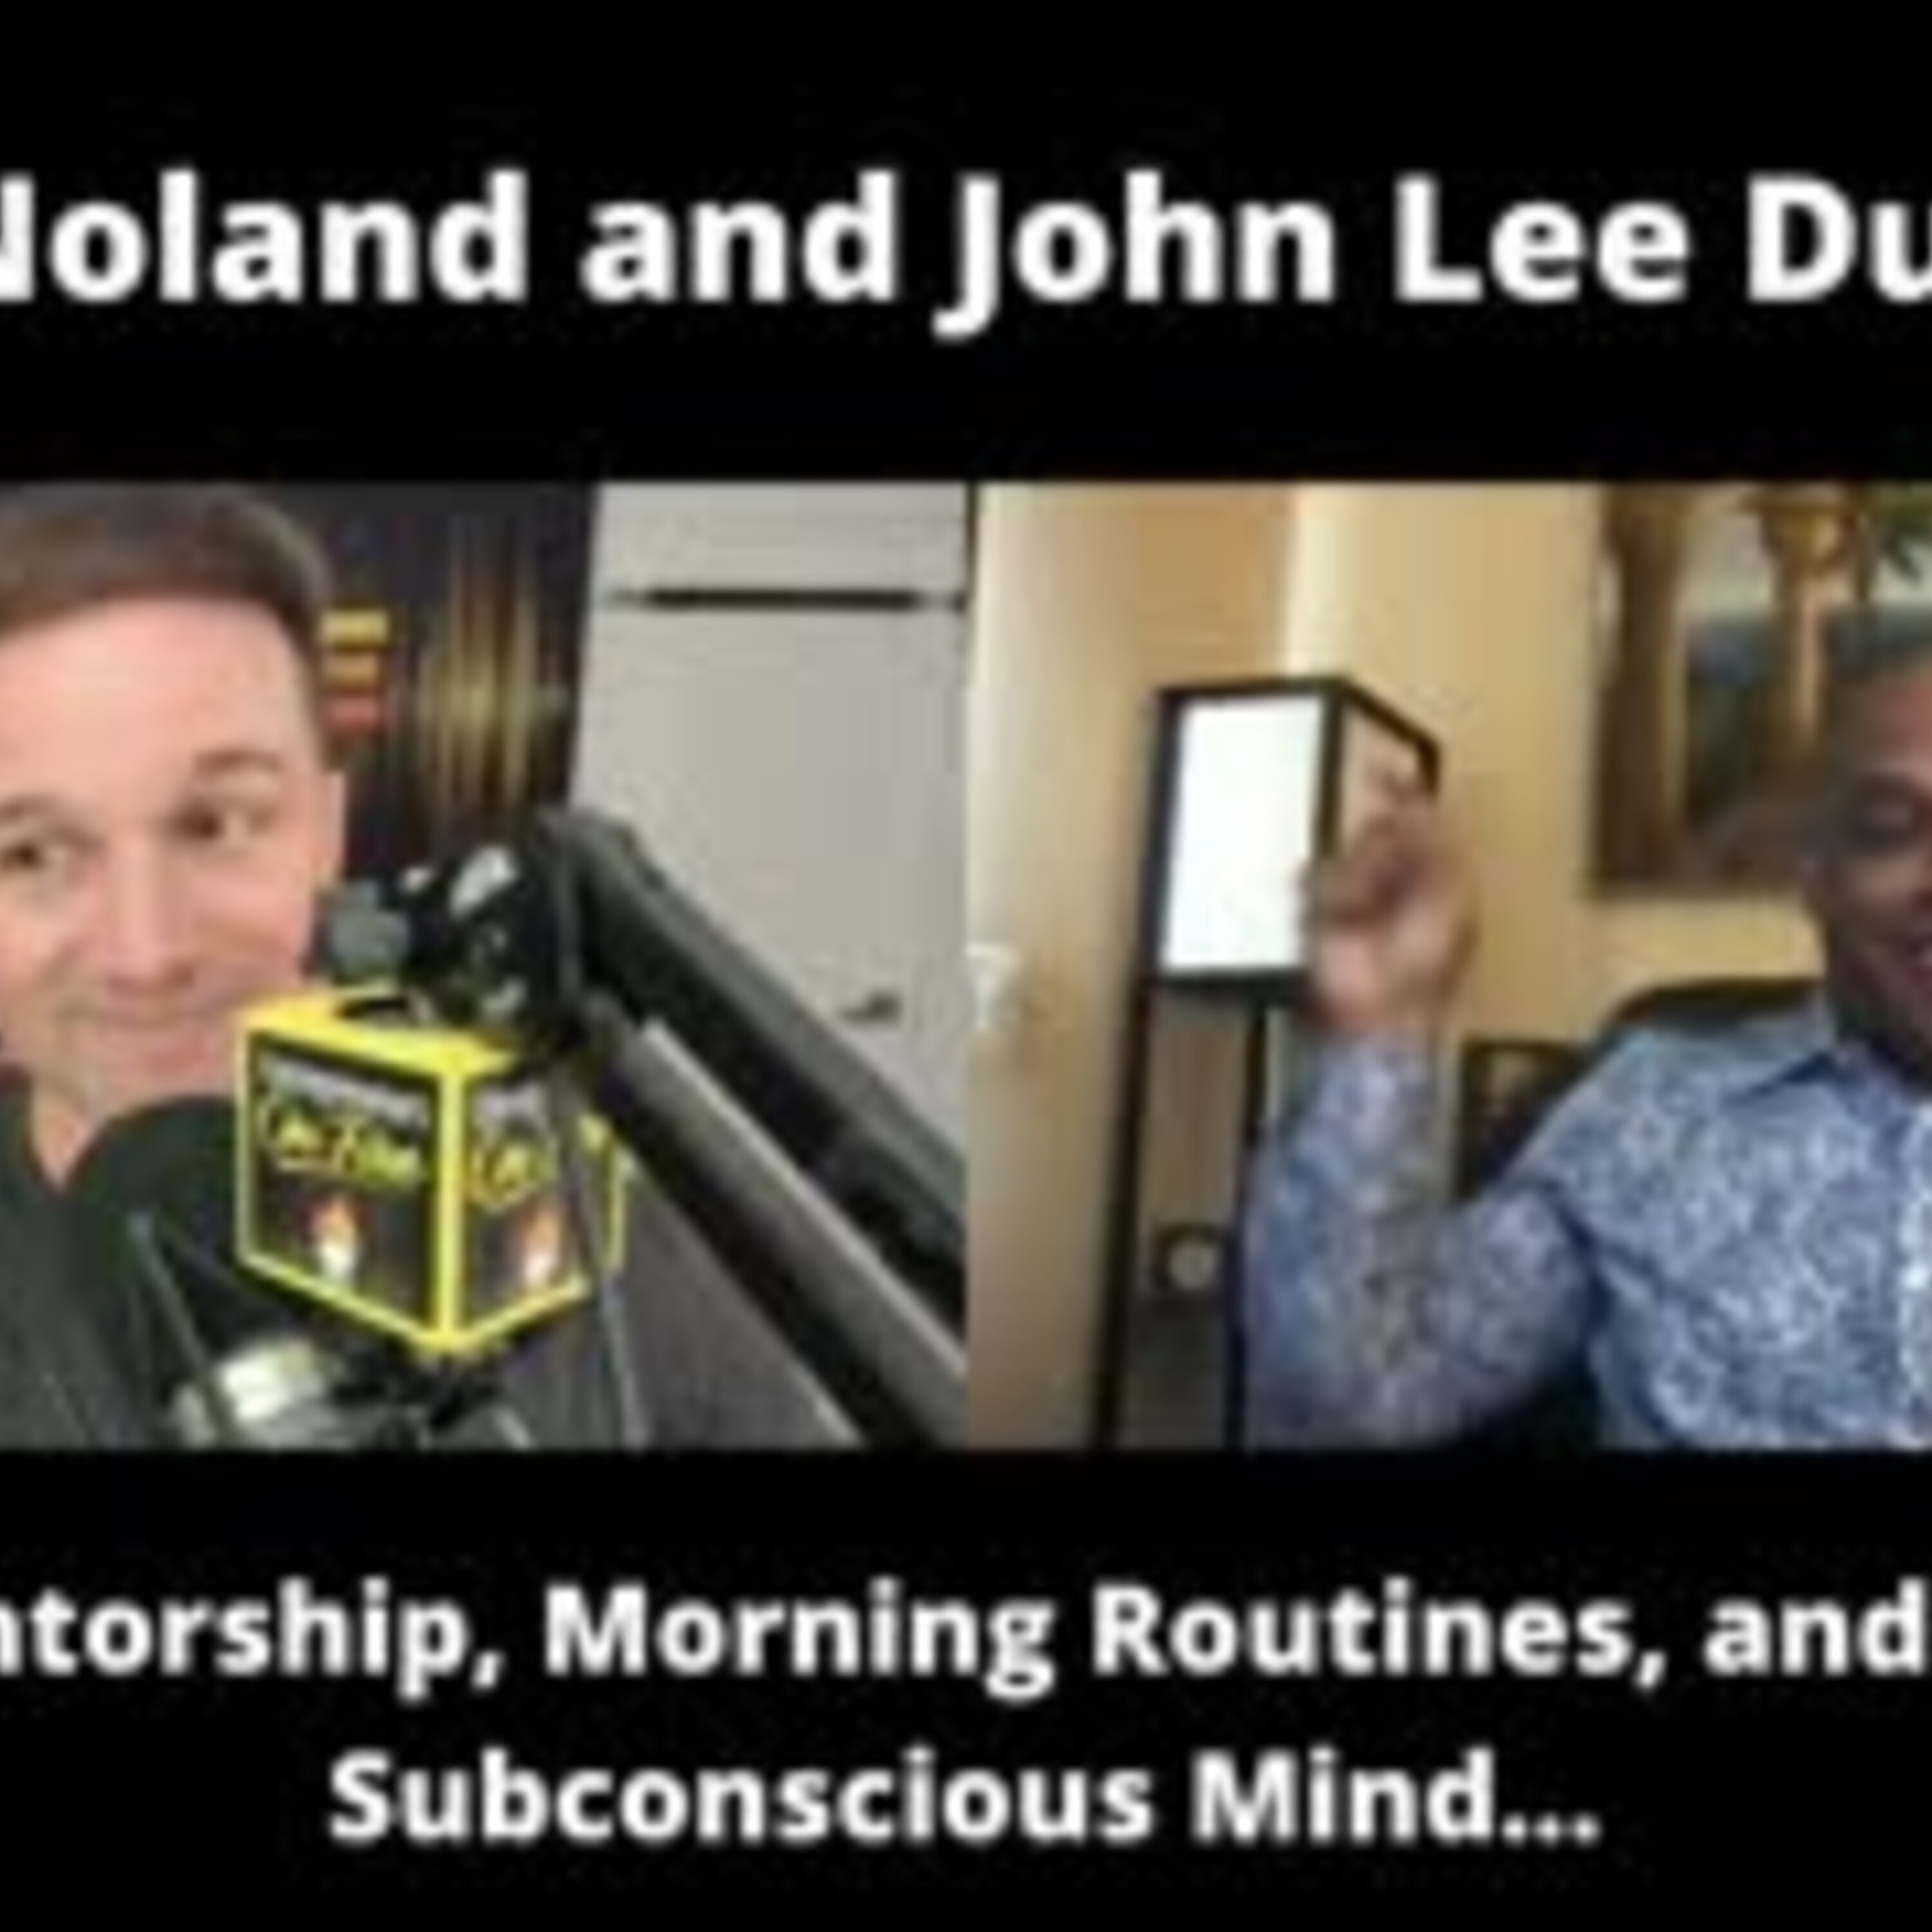 Jay Noland and John Lee Dumas (JLD) Discuss Mentorship, Morning Routines, and the Subconscious Mind